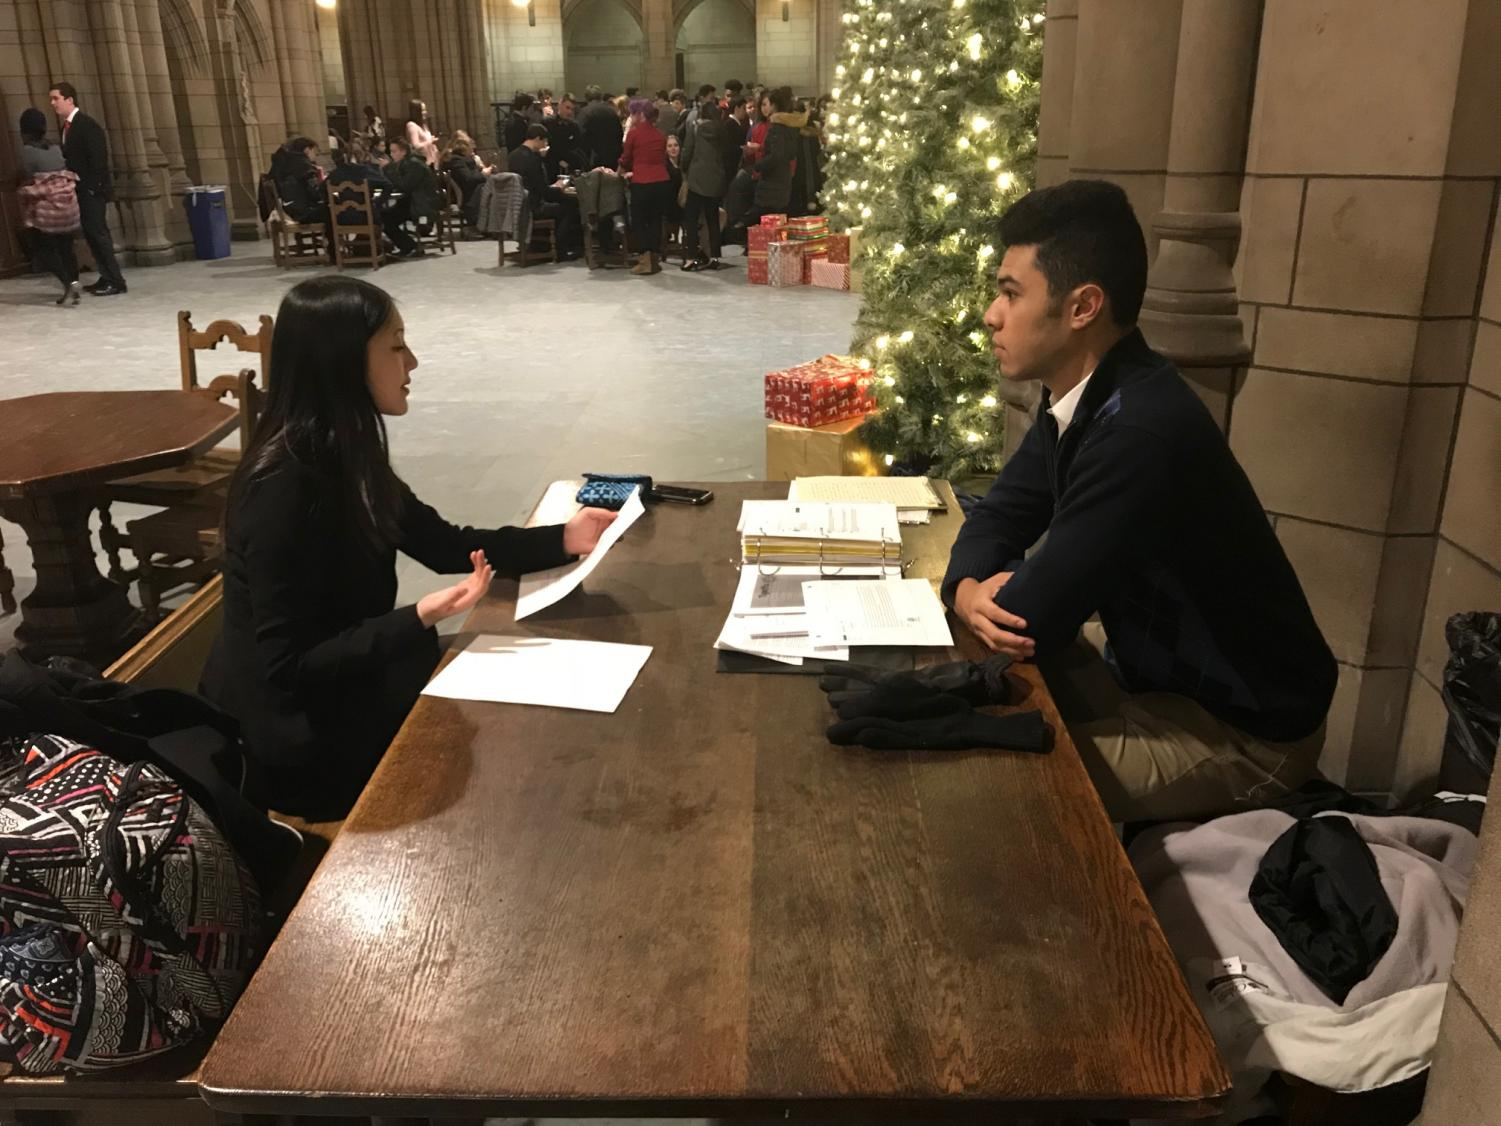 Junior Brandon Escala (right) prepares for a mock trial competition with senior Molly Harris  (right) at the annual Pitt Mock Trial Invitational in Pittsburgh